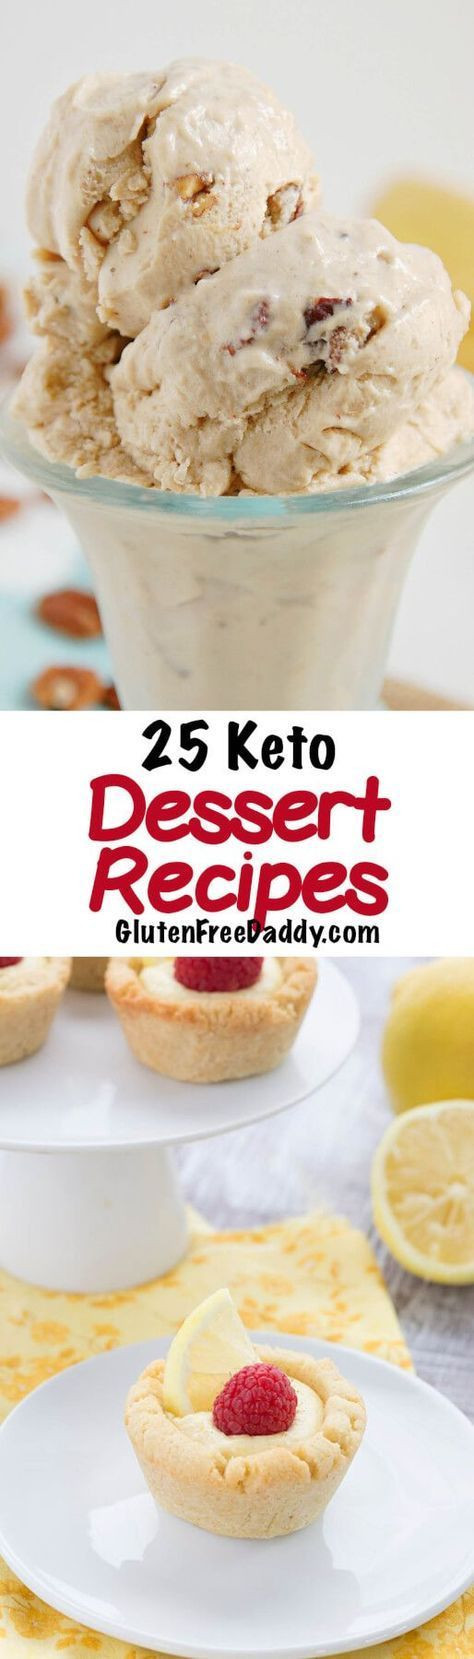 Keto Desserts You Can Buy  9 of the Best Keto Desserts Recipes Dessert You ll Love